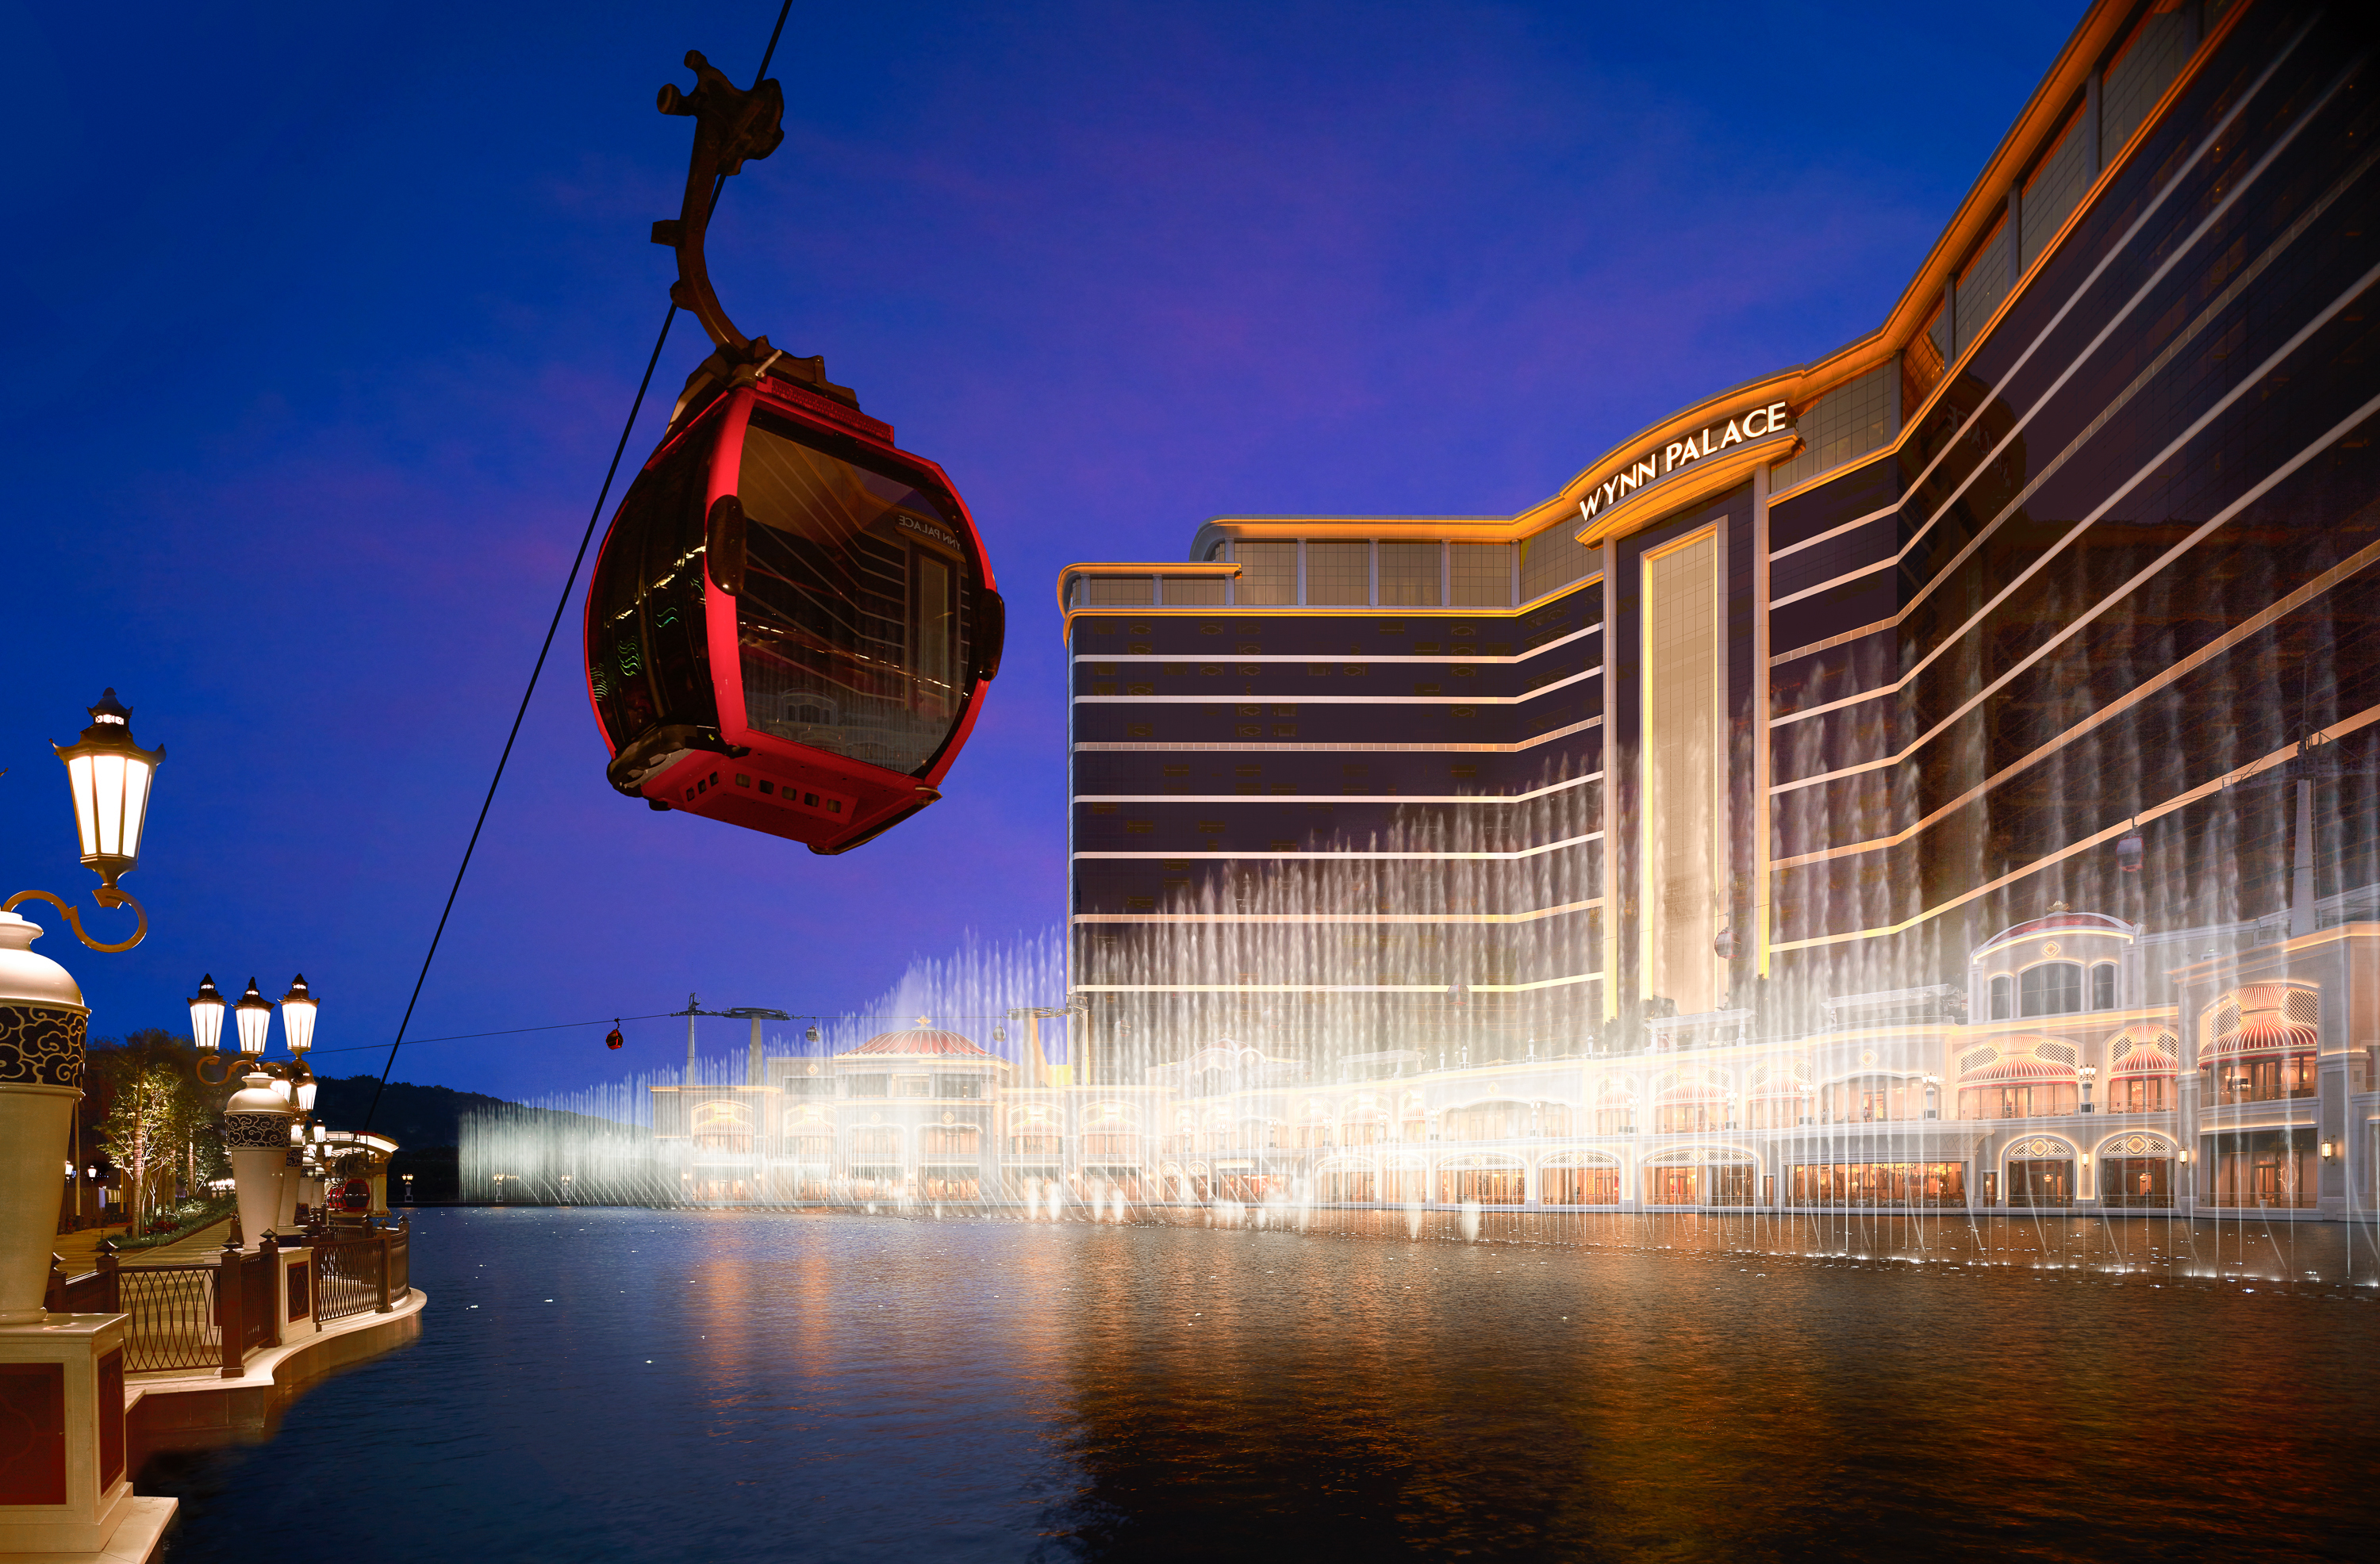 Live like royalty with Wynn Palace Cotai's special offers